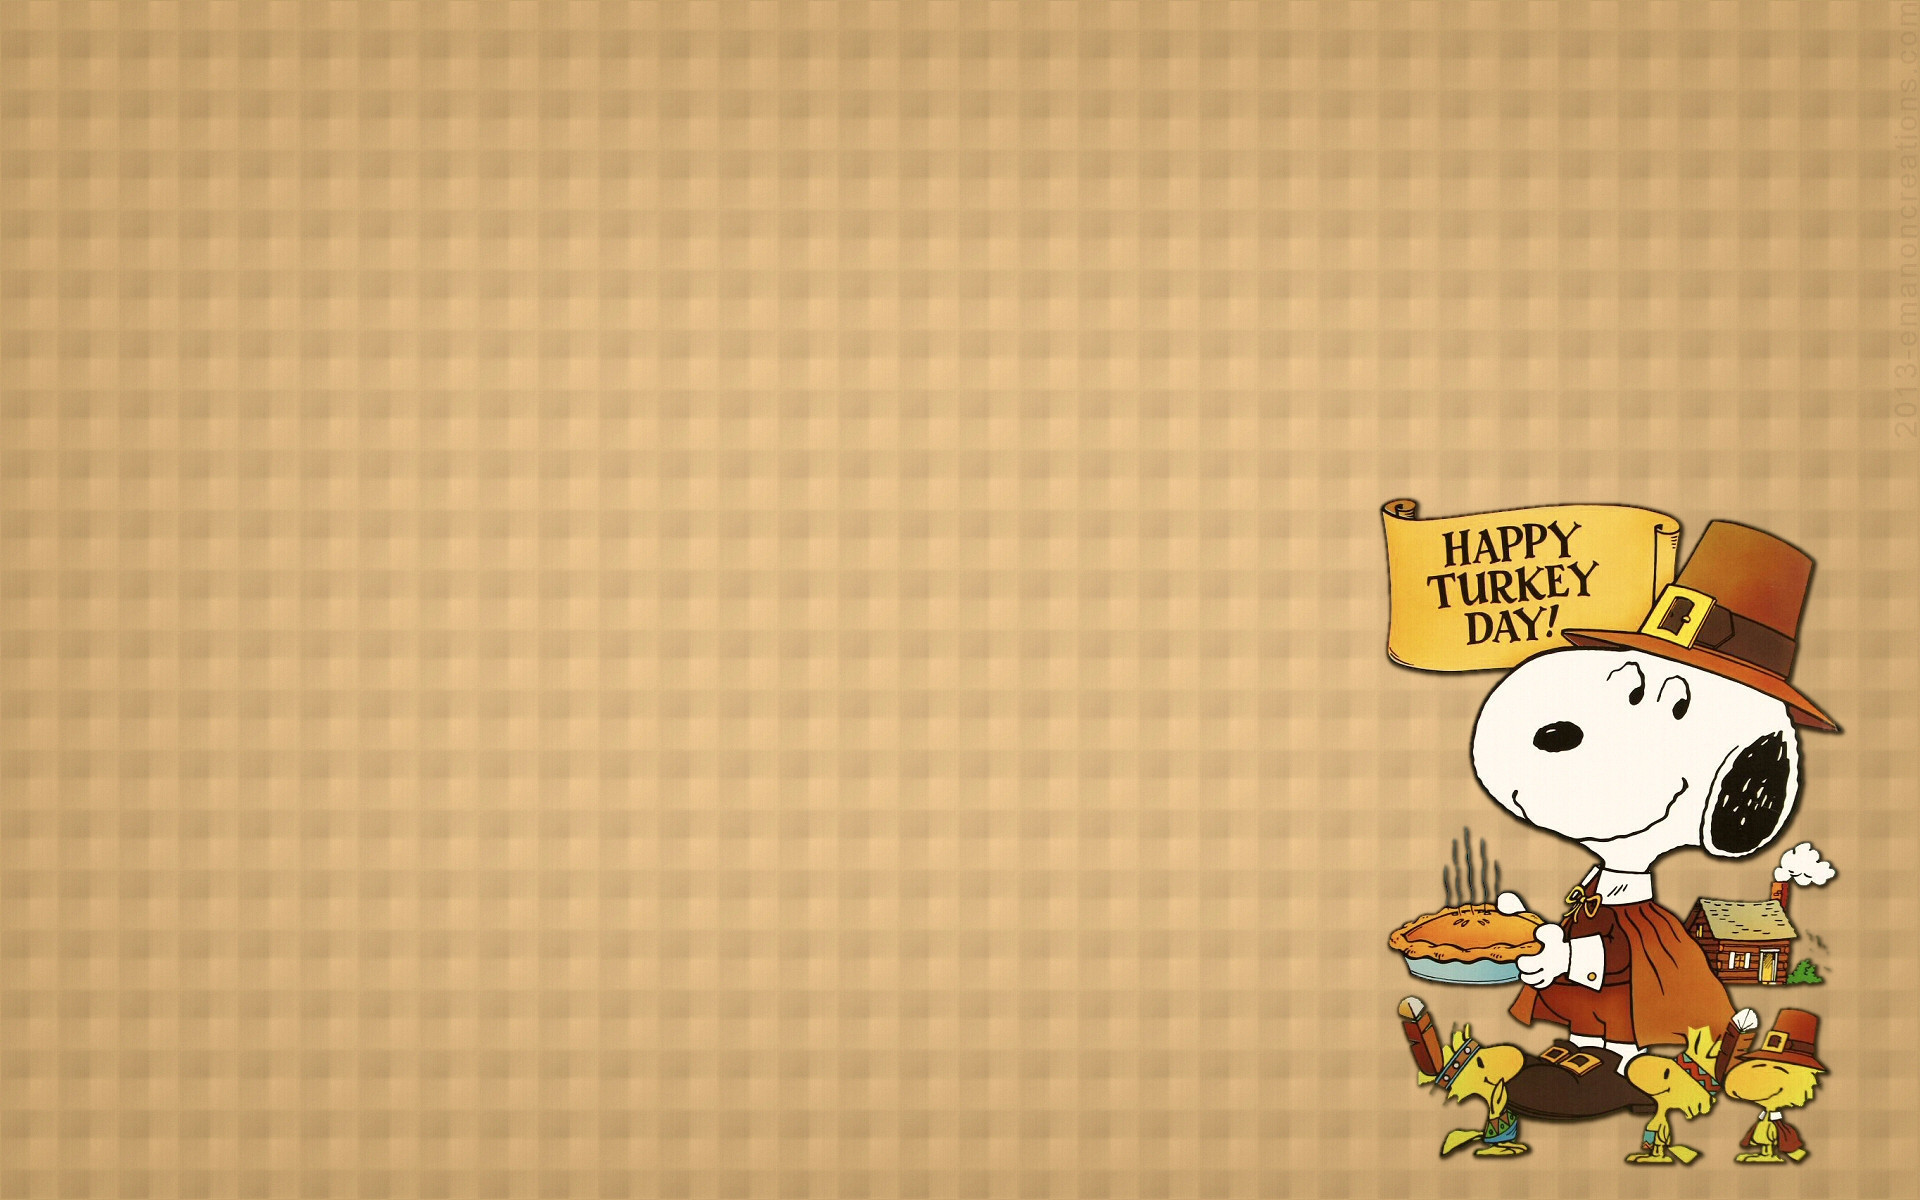 Res: 1920x1200, Res: 1920x1080, Snoopy Thanksgiving Wallpapers ...